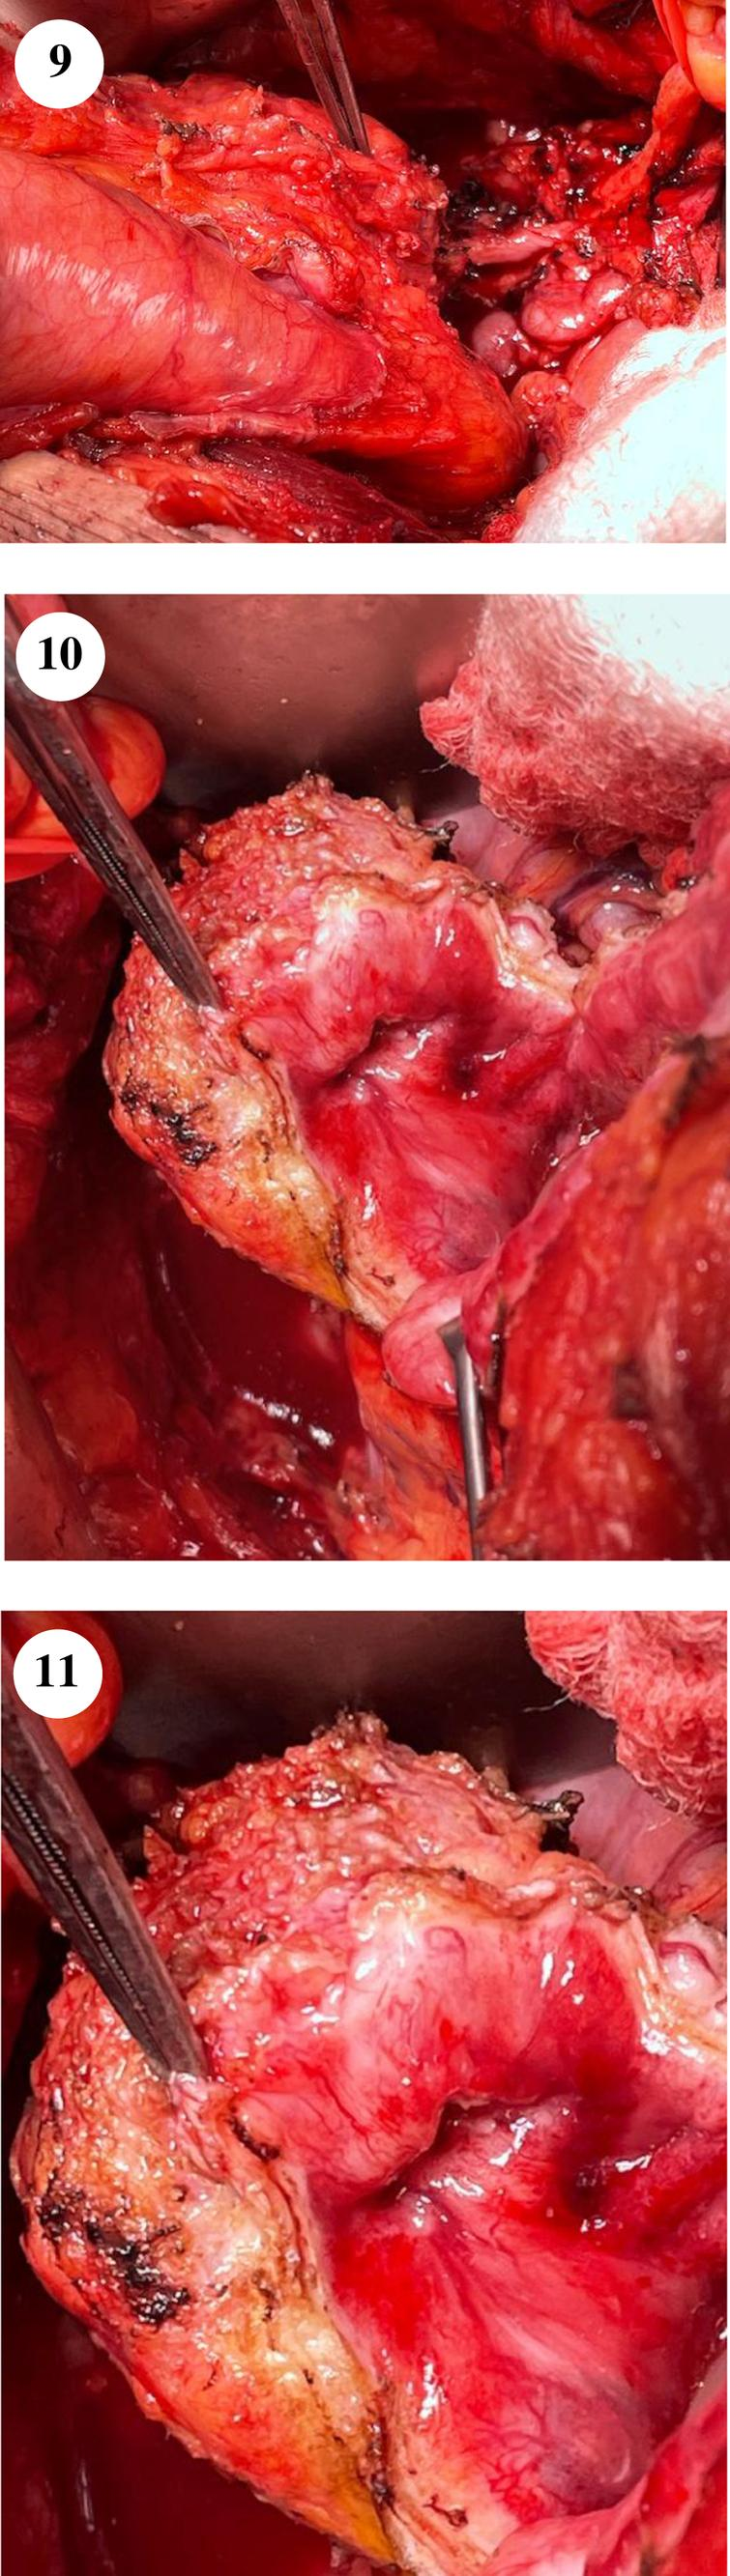 The firm mass is seen in figure 9 with the instrument pointing to it. The mobilized right distal ureter is seen proximal to the bladder. Figures 10–11 show the tumor containing bladder diverticulum.